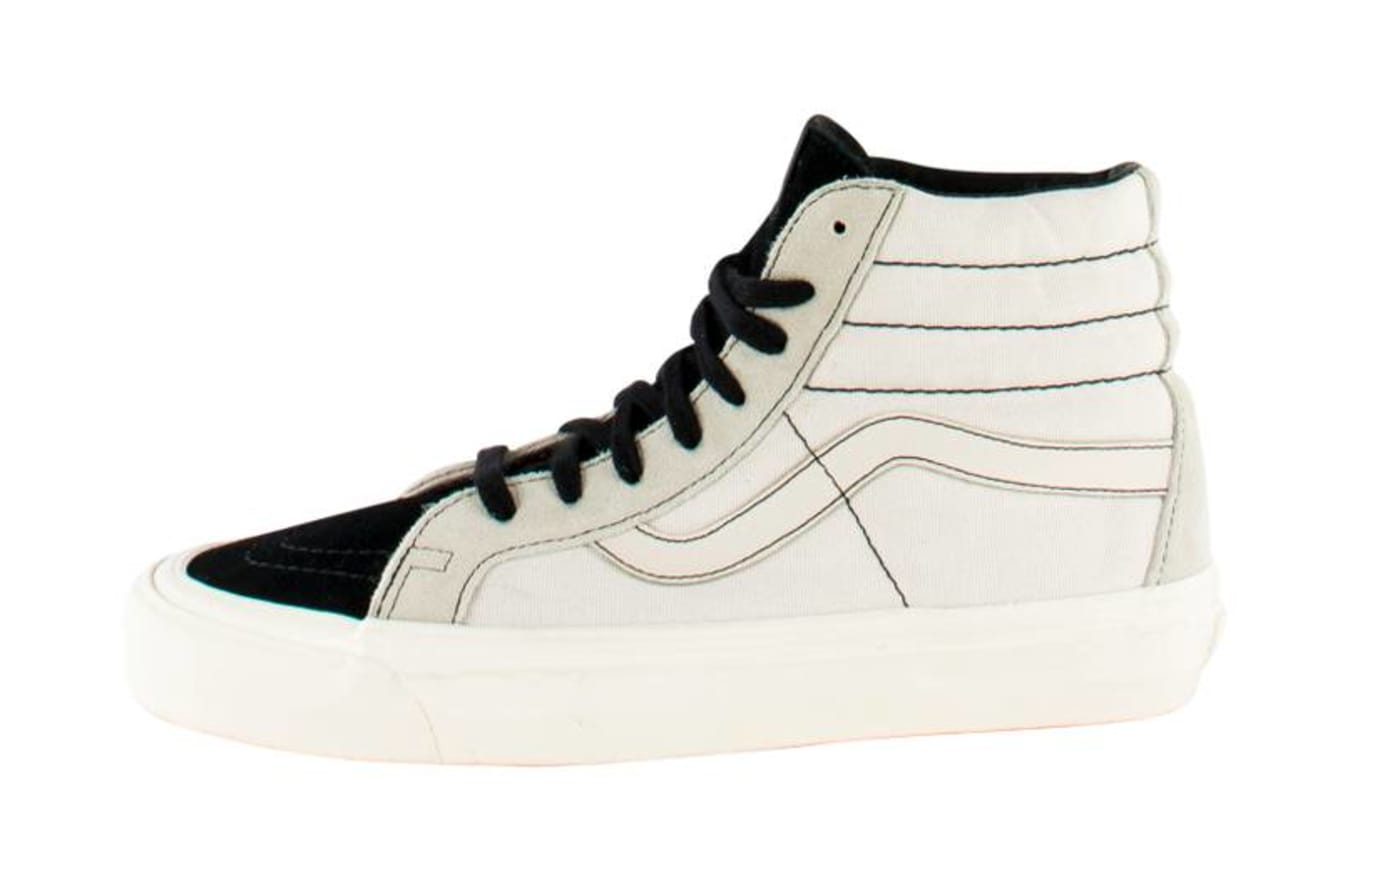 Fear of God x Vans Sk8-Hi White Sample